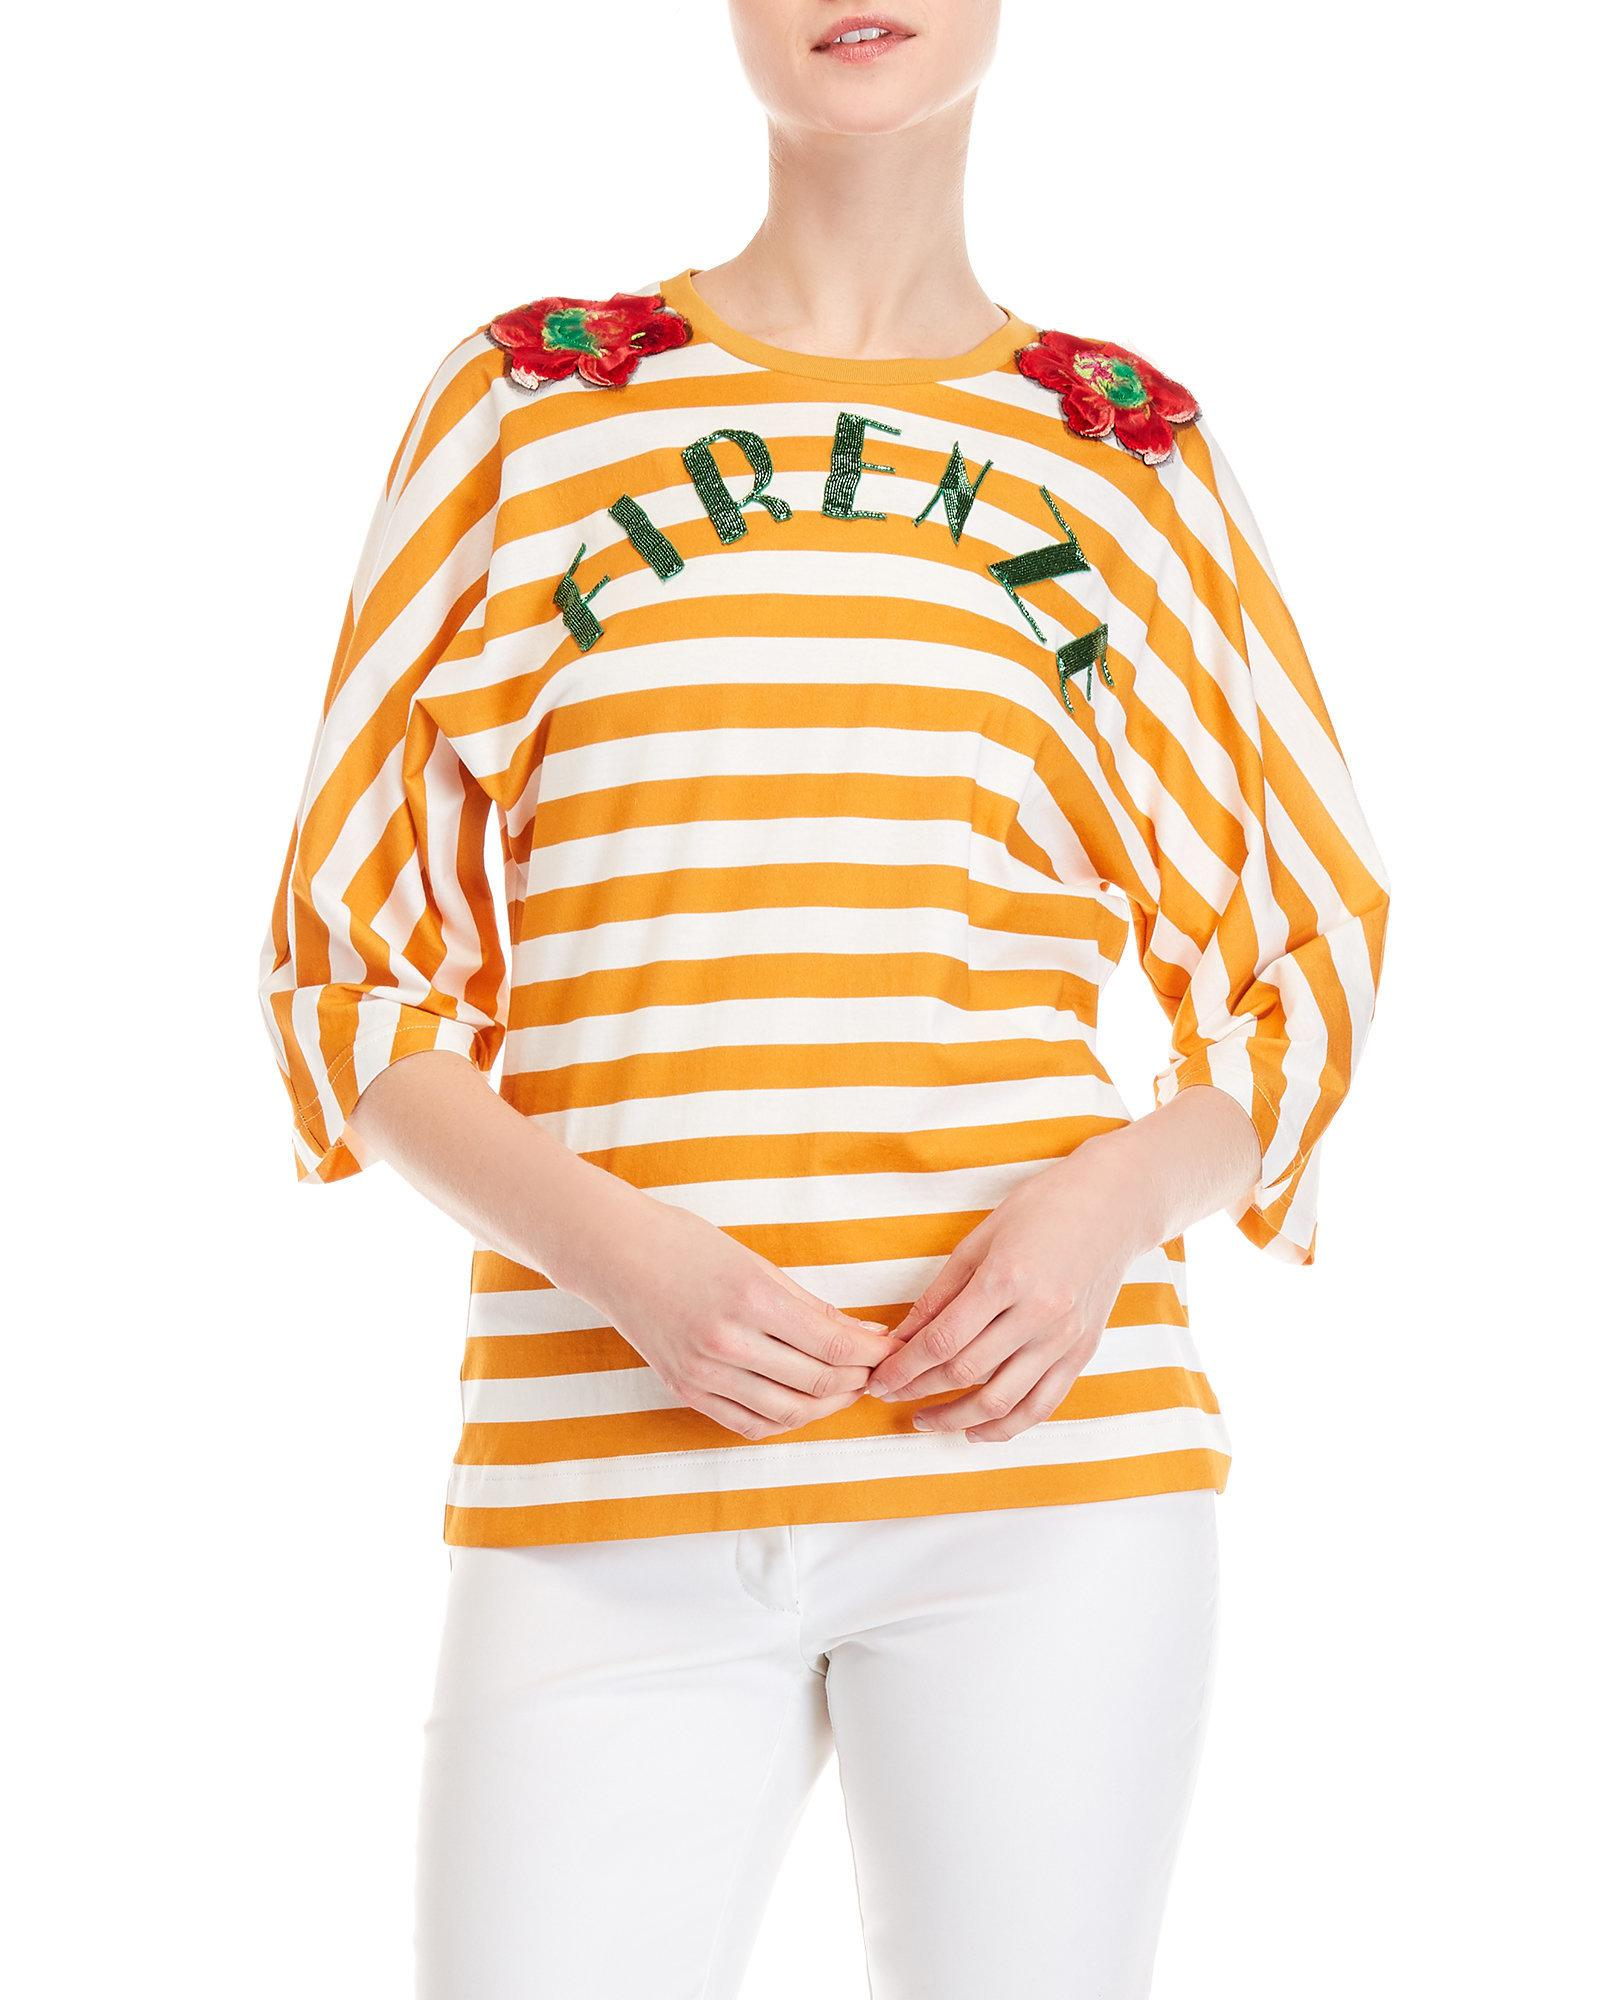 Lyst - Dolce   Gabbana Firenze Striped Tee in Orange 7f4ad87f0410a